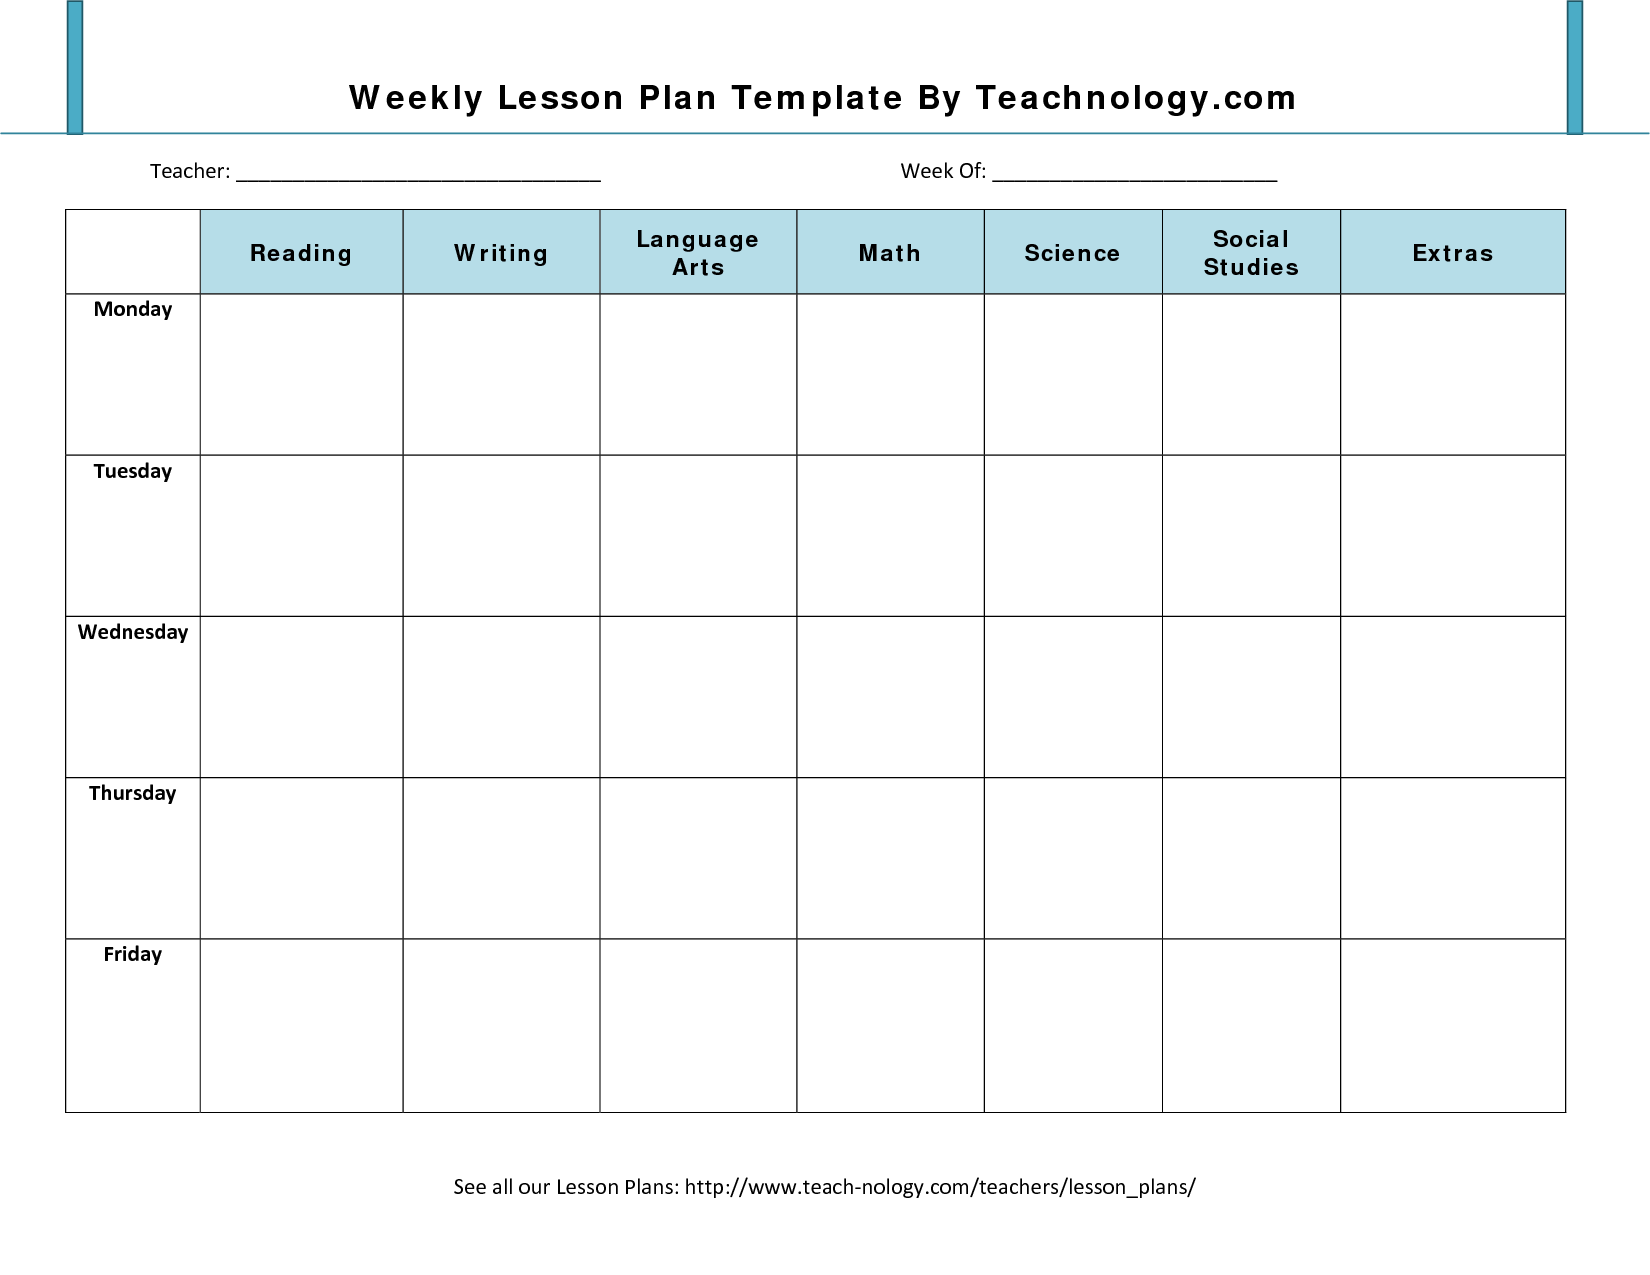 Lesson Plan Format  Weekly Lesson Plan Template For Teachers